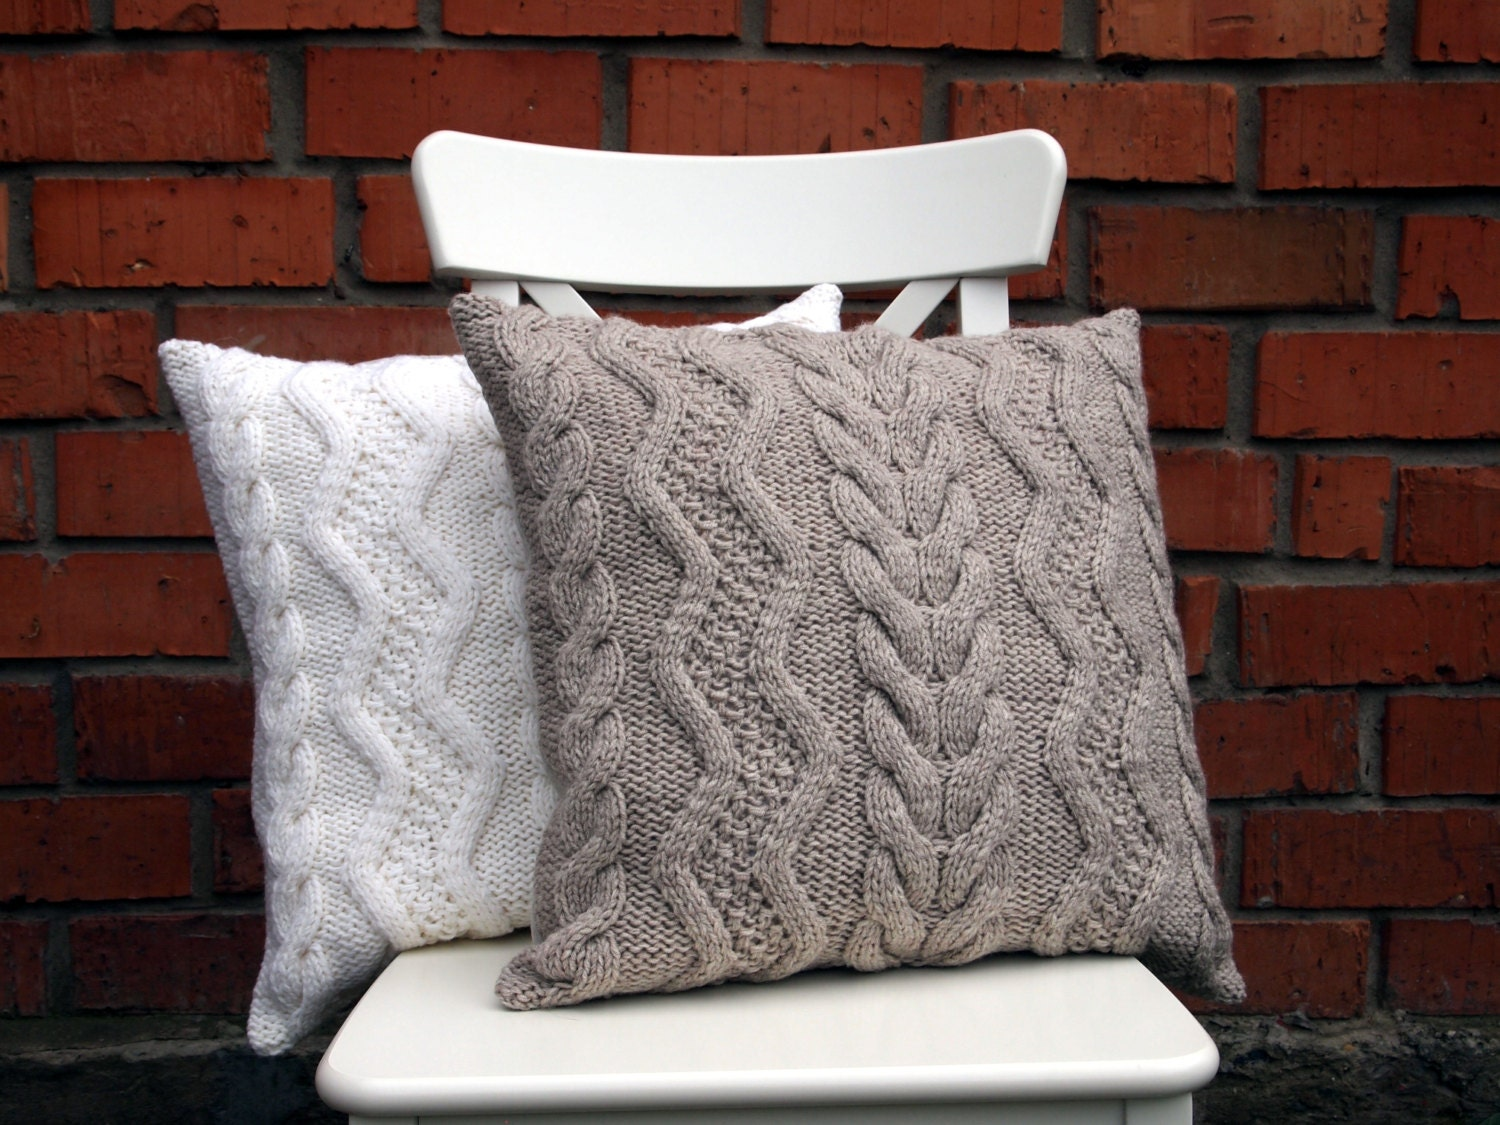 Knitting Pillows : Beige gray or off white cable knit pillow cover х inches